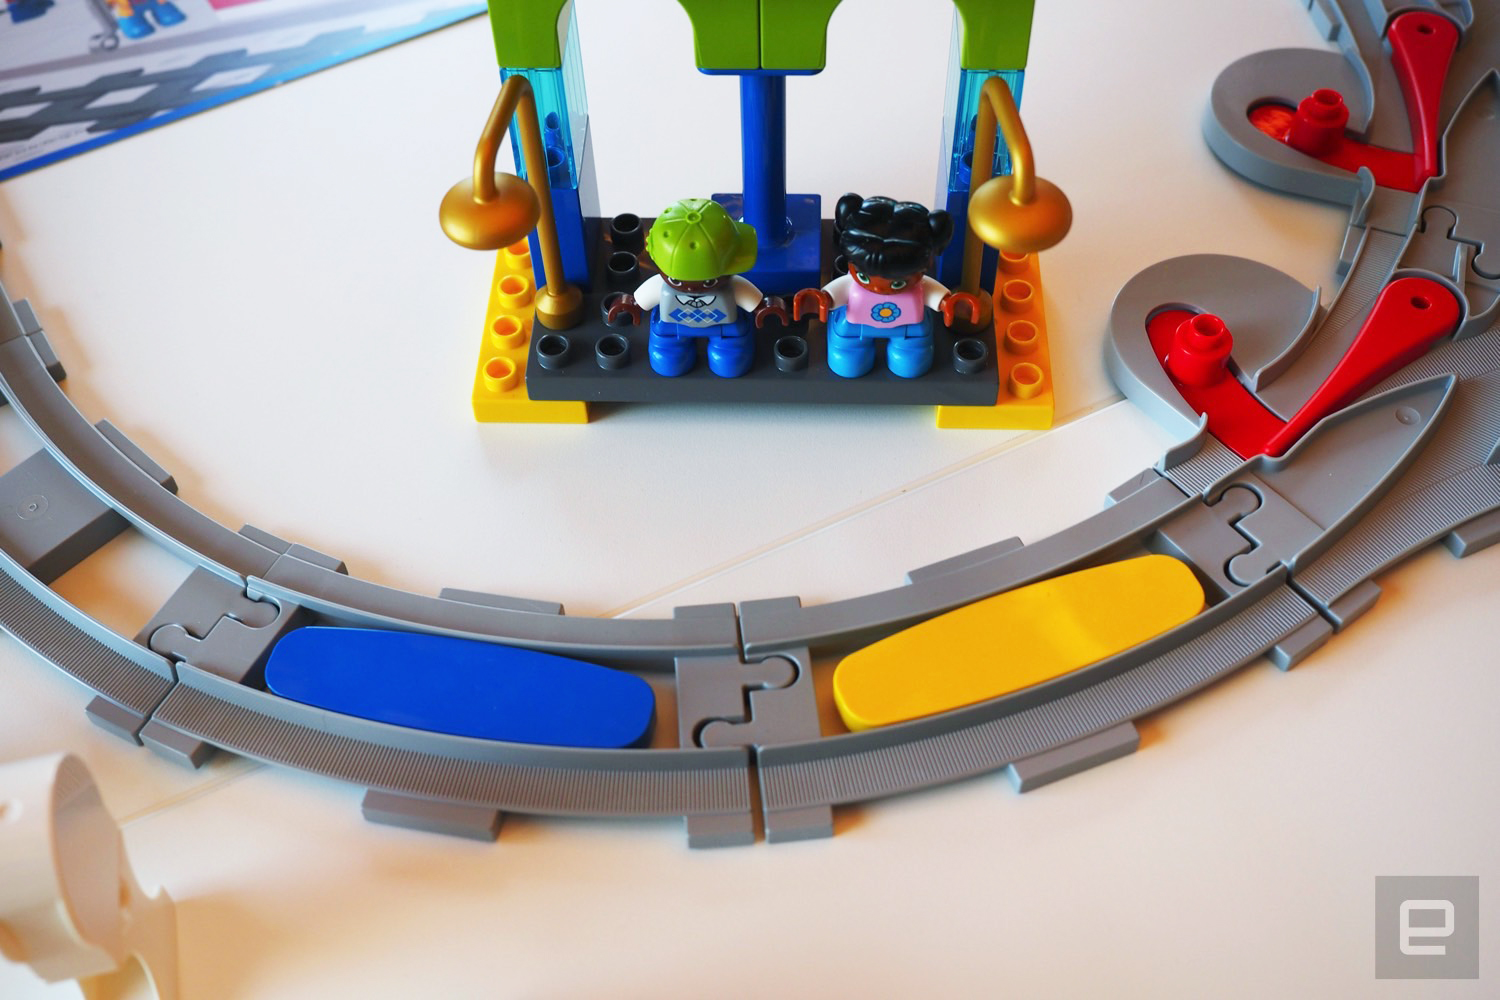 Lego's new toy train is a STEM tool for preschoolers